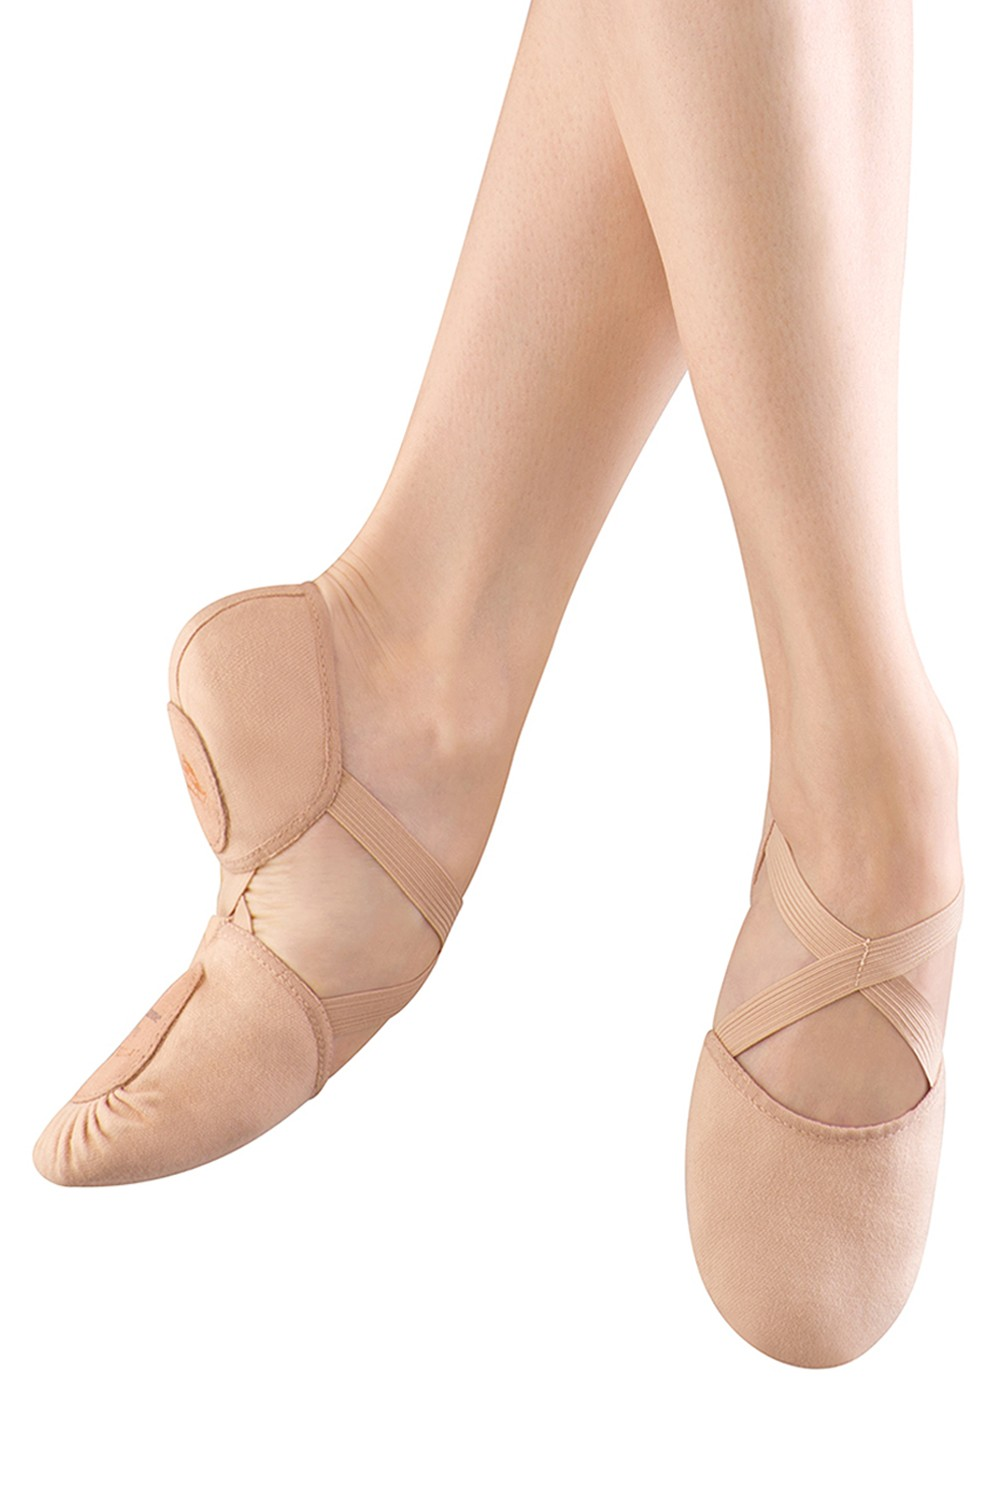 Elastosplit X Canvas Women's Ballet Shoes